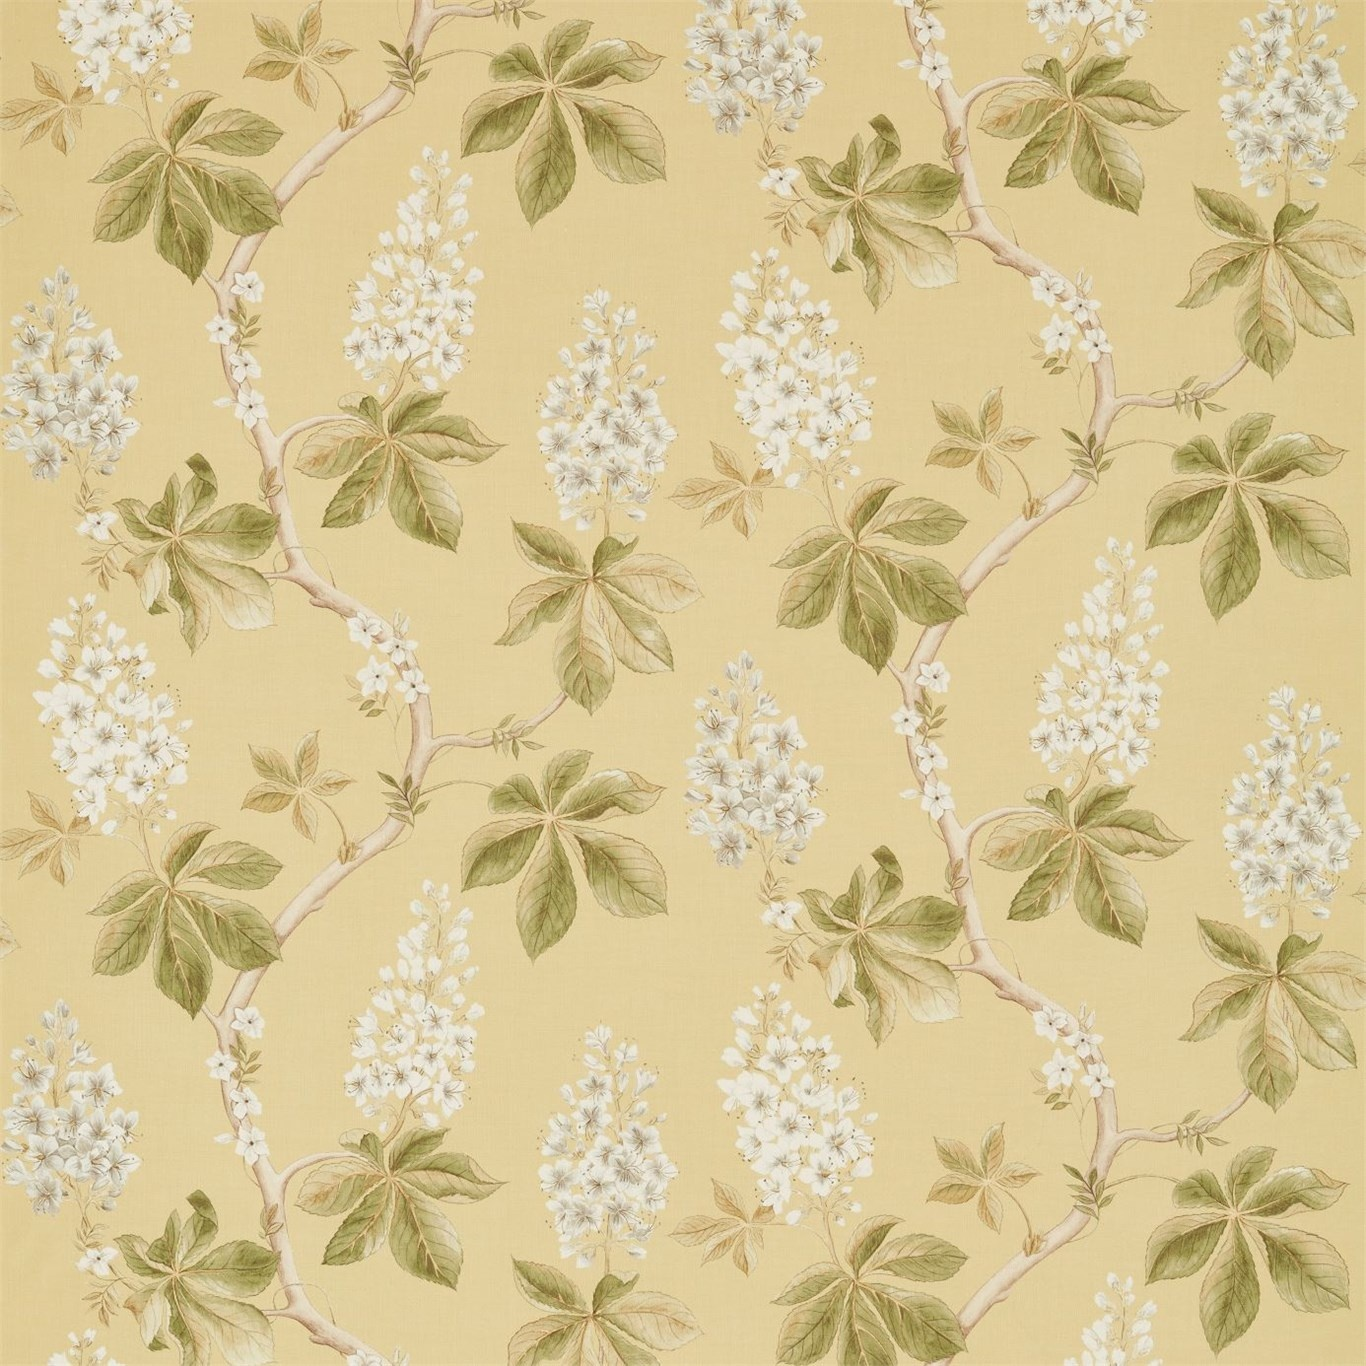 Image of Sanderson Chestnut Tree Seaspray/Peony Fabric 225516